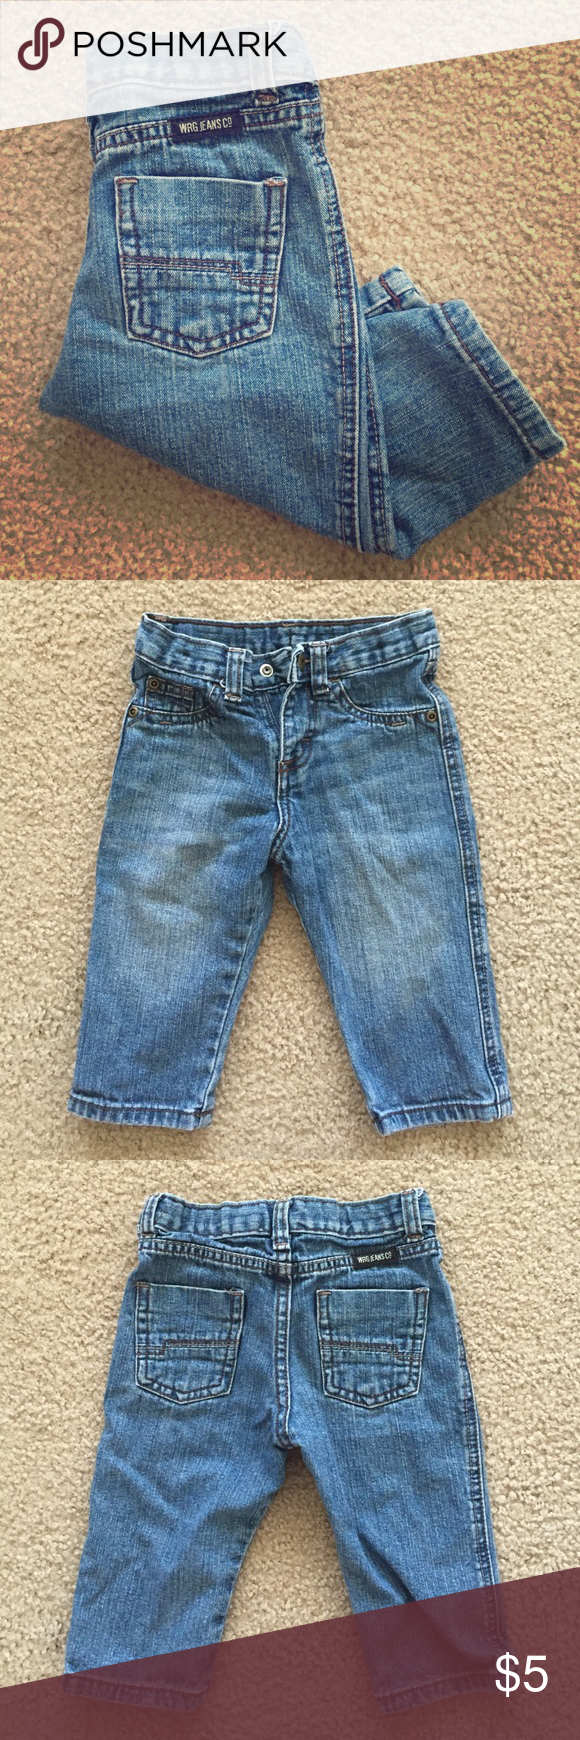 "🔥New Listing🔥 Baby Wranglers Great condition!!! Adorable toddler baby wrangler jeans. 9"" inseam. Has the adjustable hidden waistband, but the elastic pulled back inside the waistband Wrangler Bottoms Jeans"